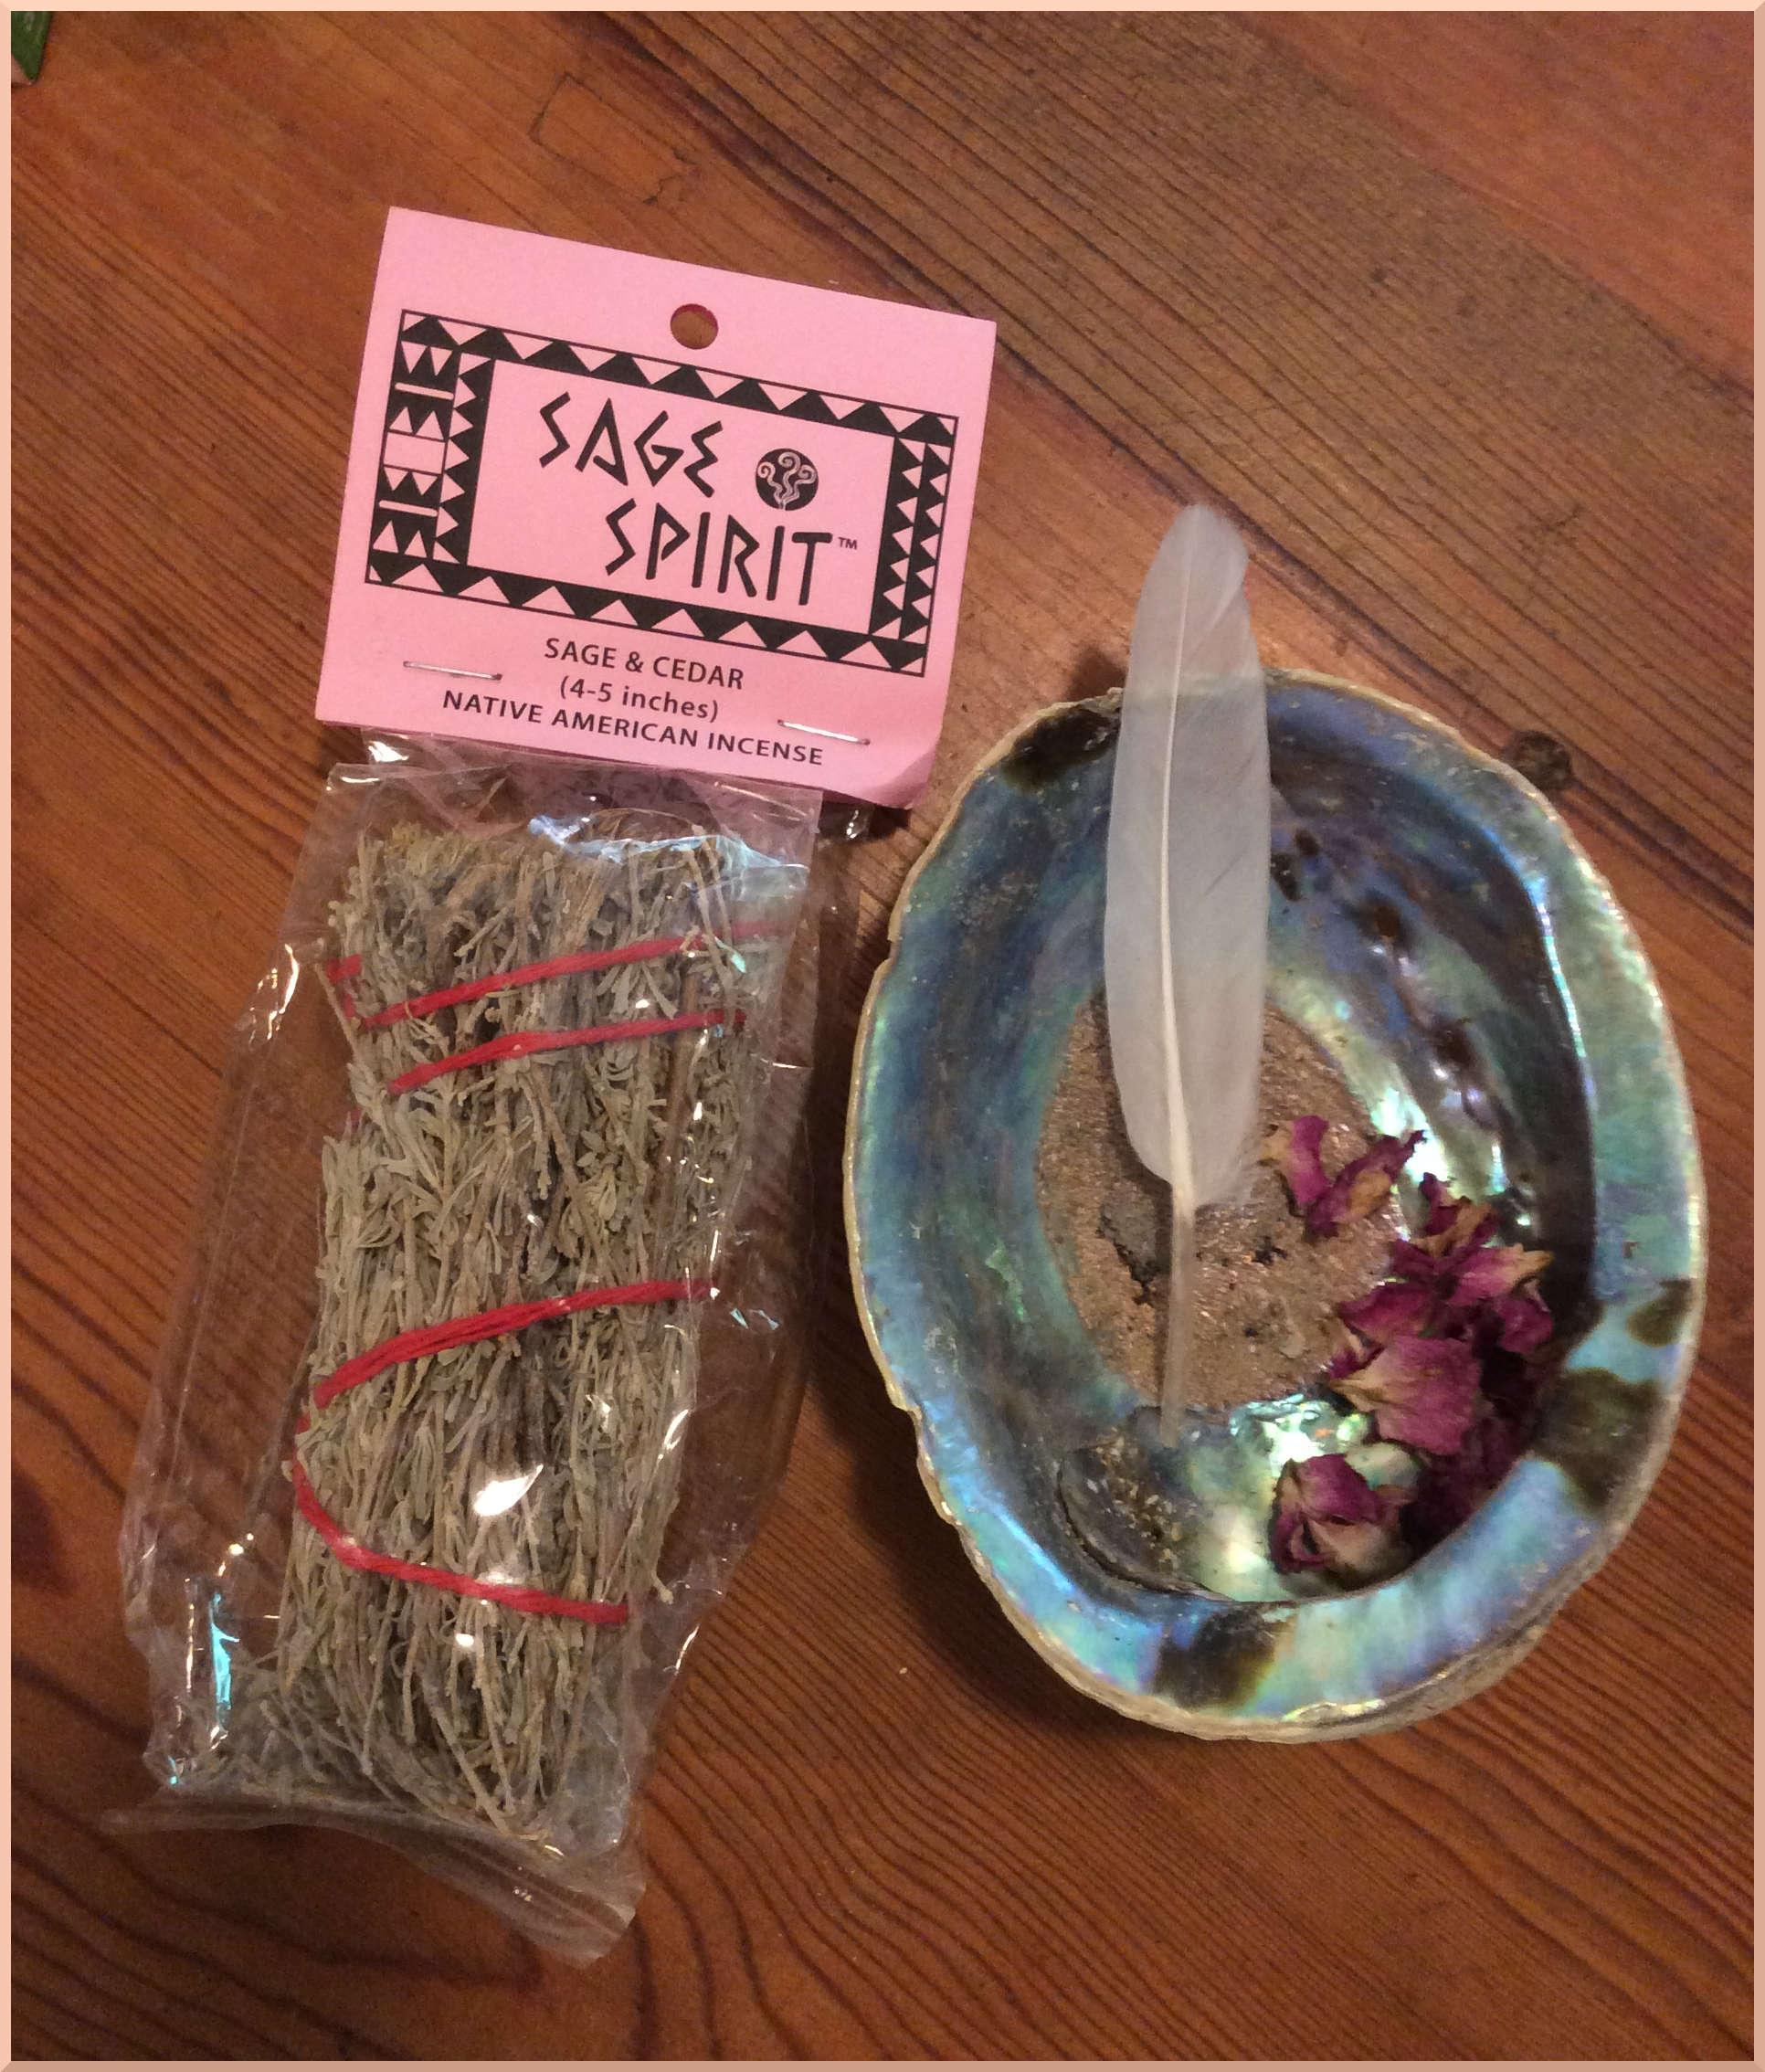 Sage and Cedar Smudge Wand at MVC